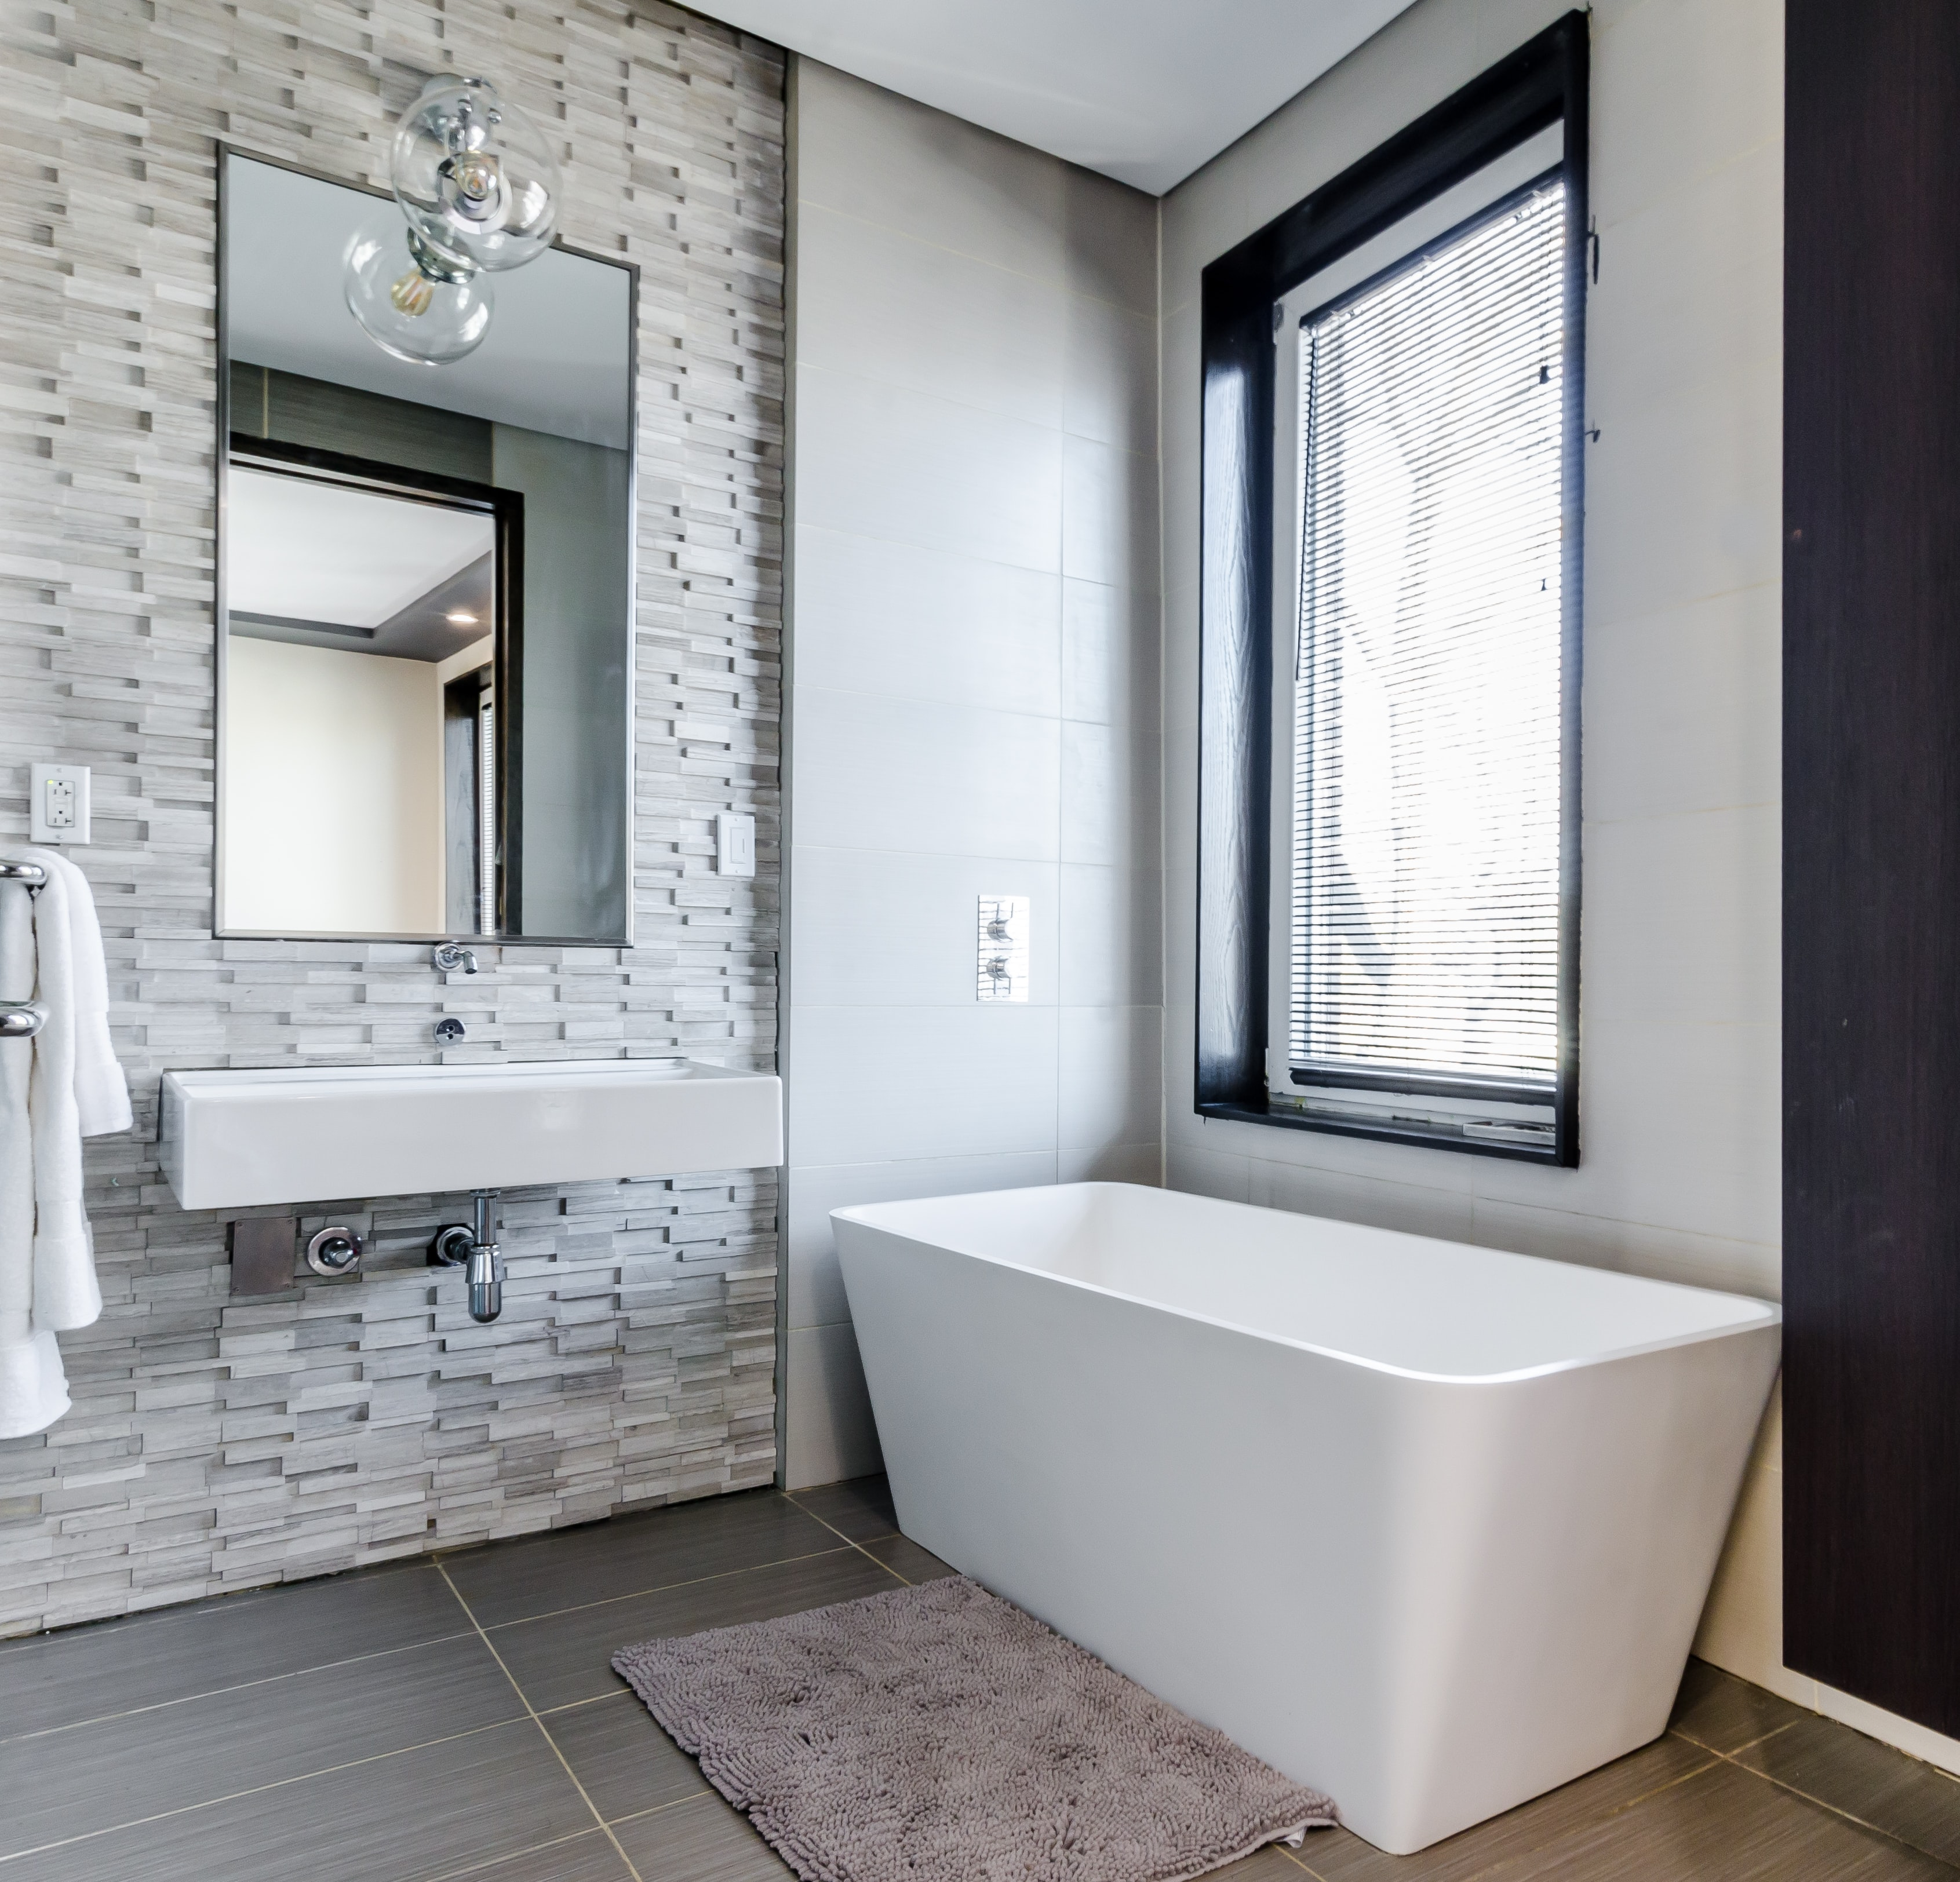 Bathroom with small bath and wall-mounted sink